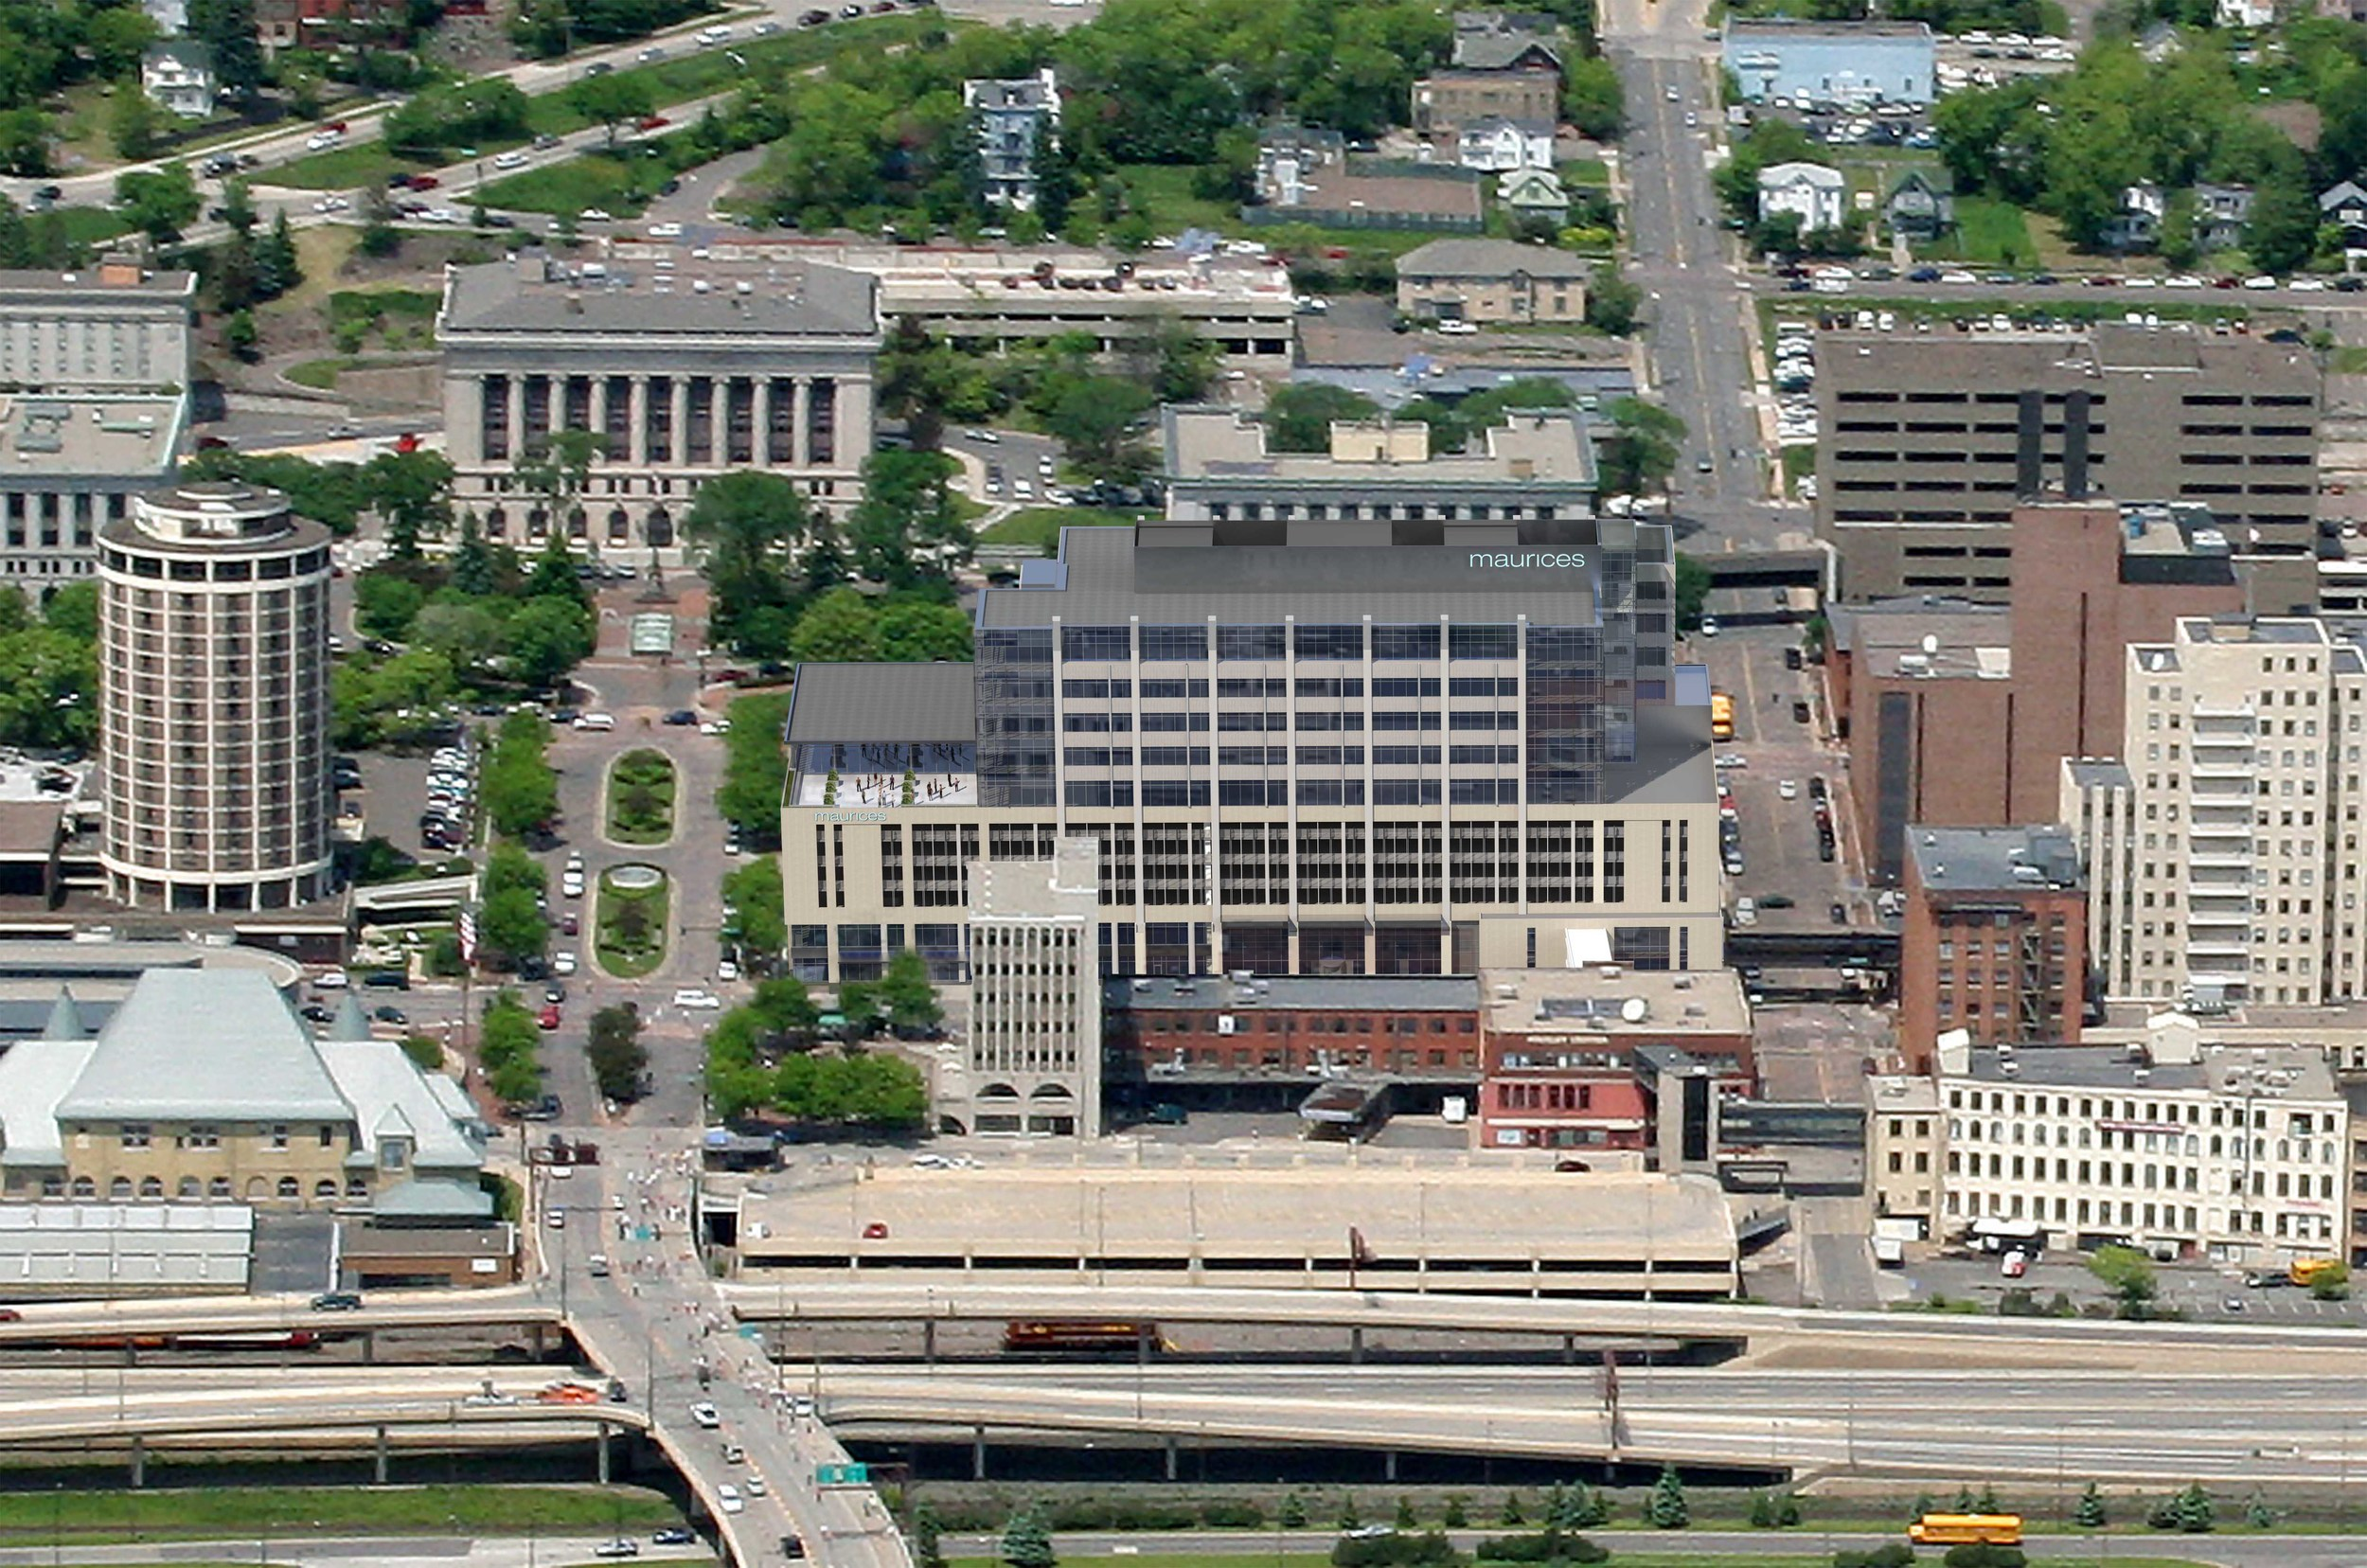 Aerial view of the new maurices Headquarters.  (Image property of maurices)